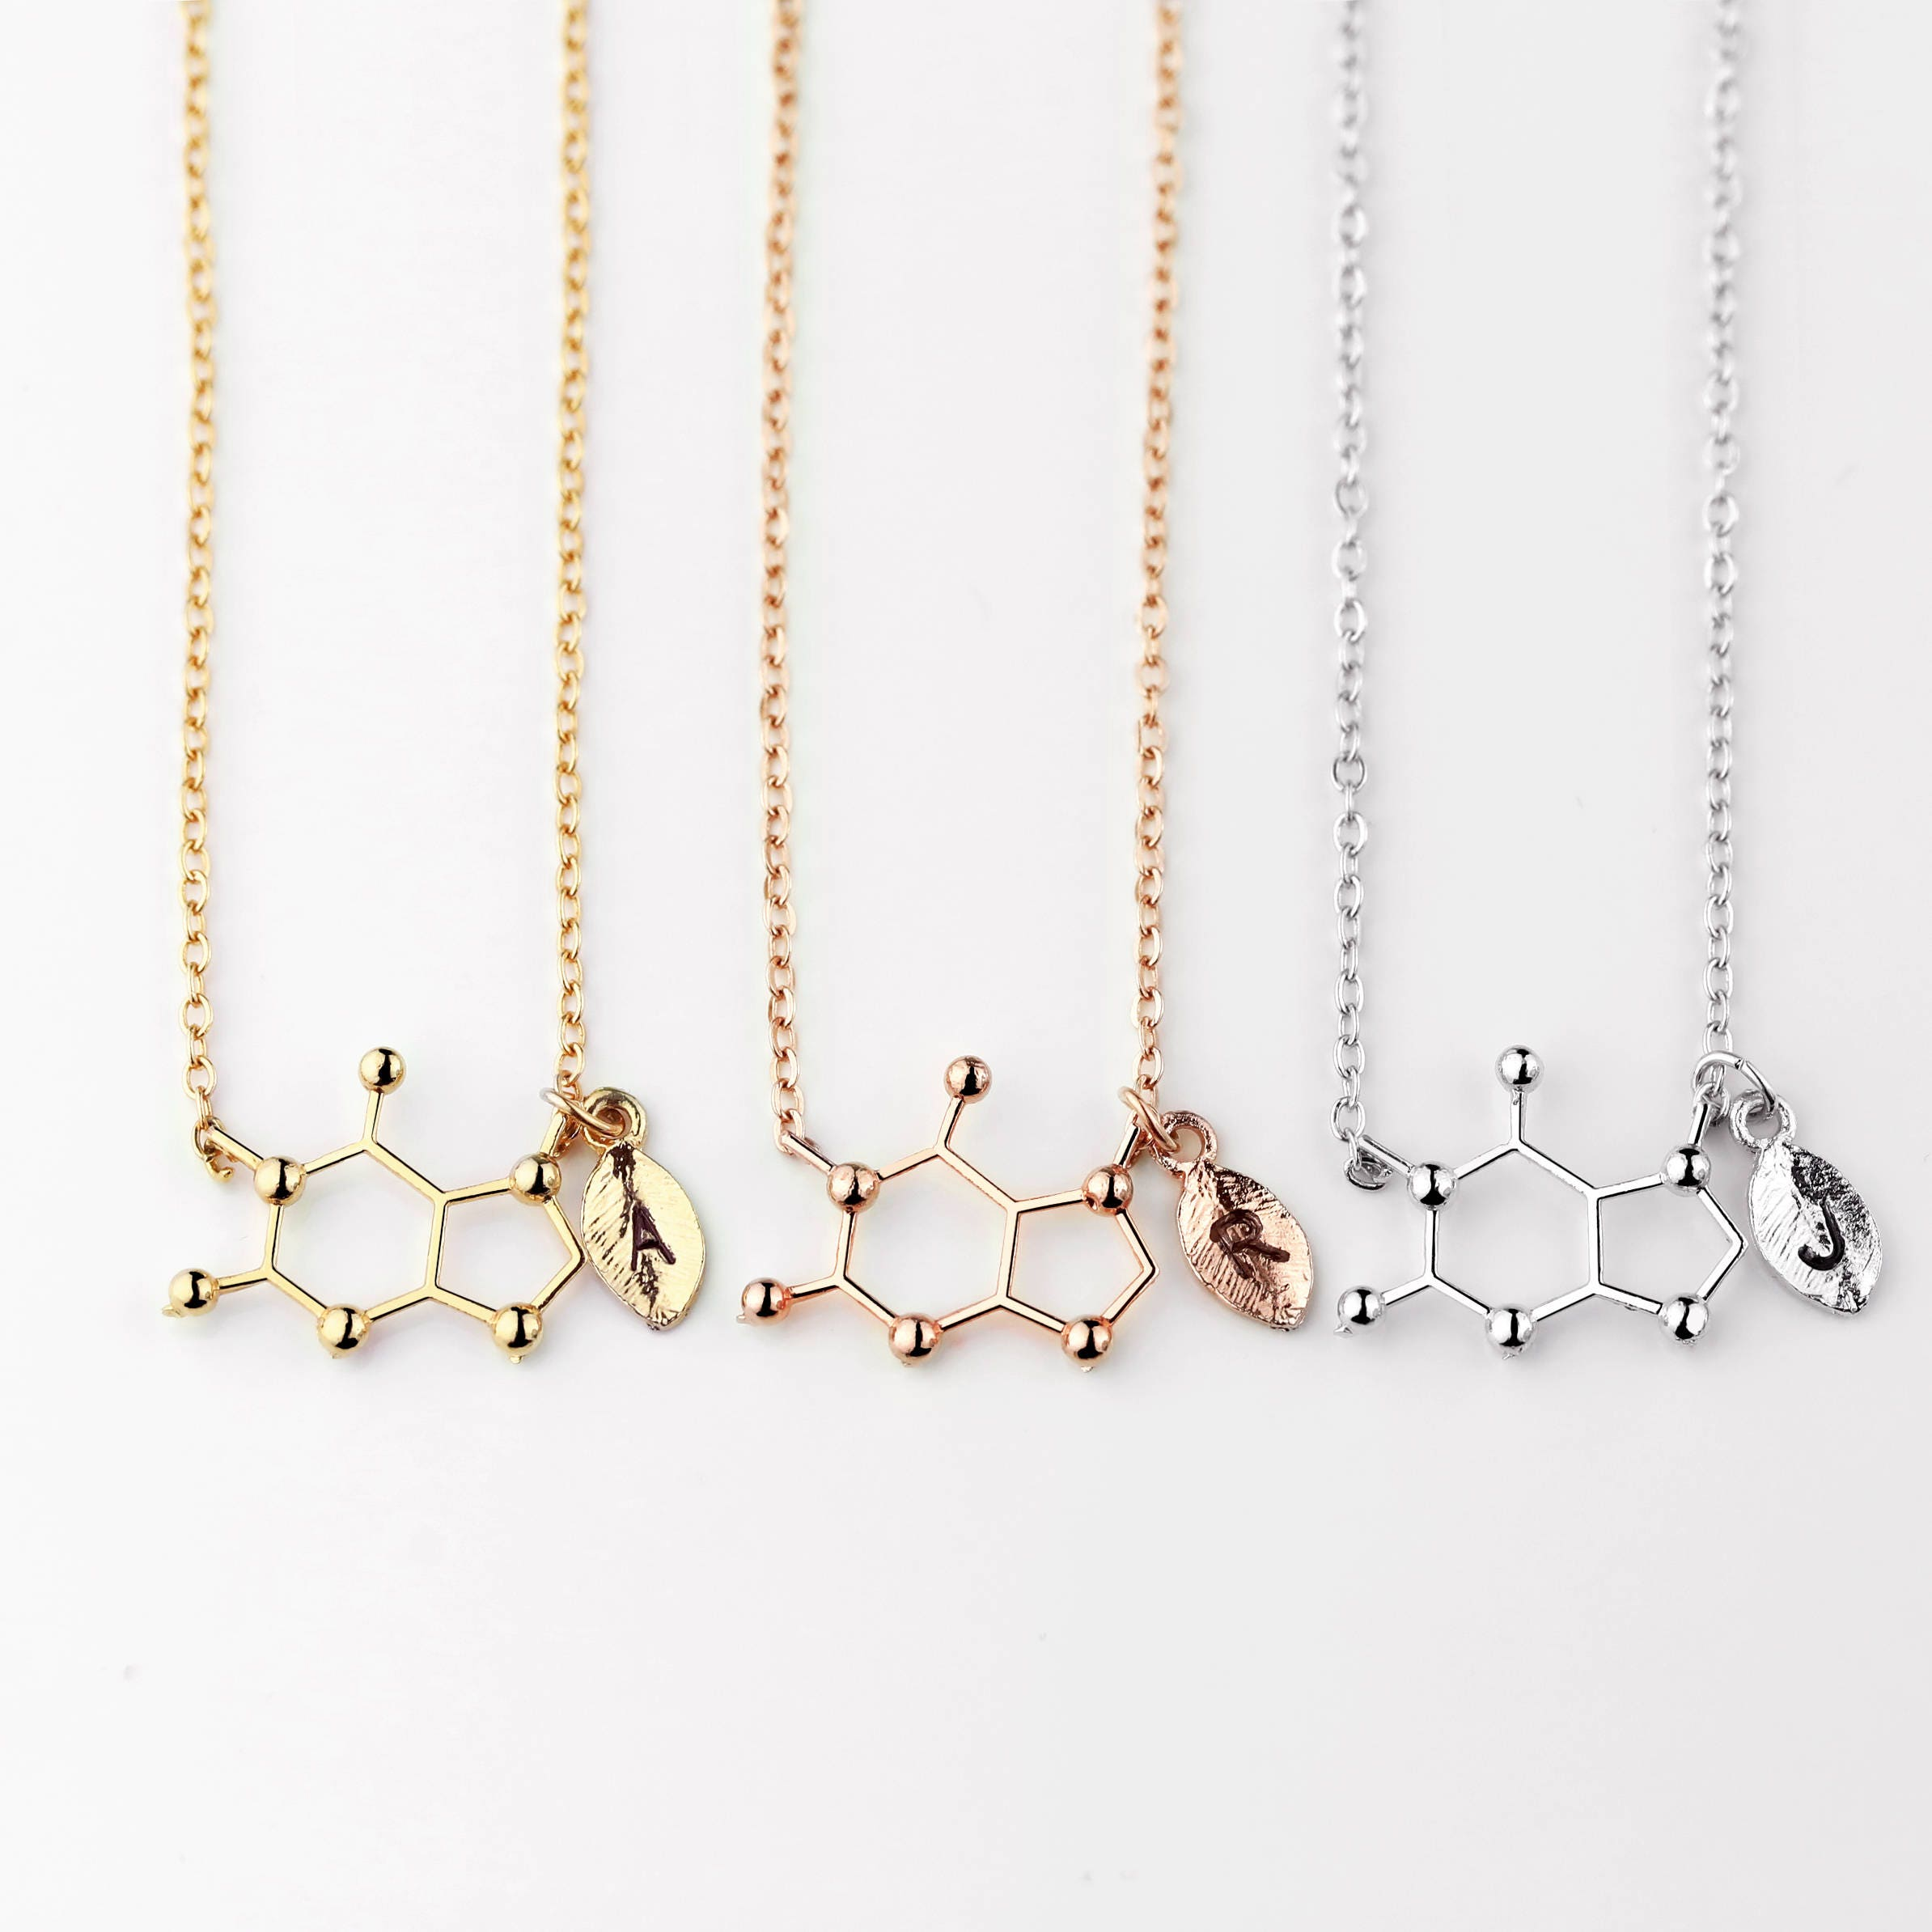 Stocking Stuffers Coffee Lover Gift Coffee Lover Gift Coffee Lovers Caffeine Addict Necklace Geek Gift Caffeine Molecule Necklace